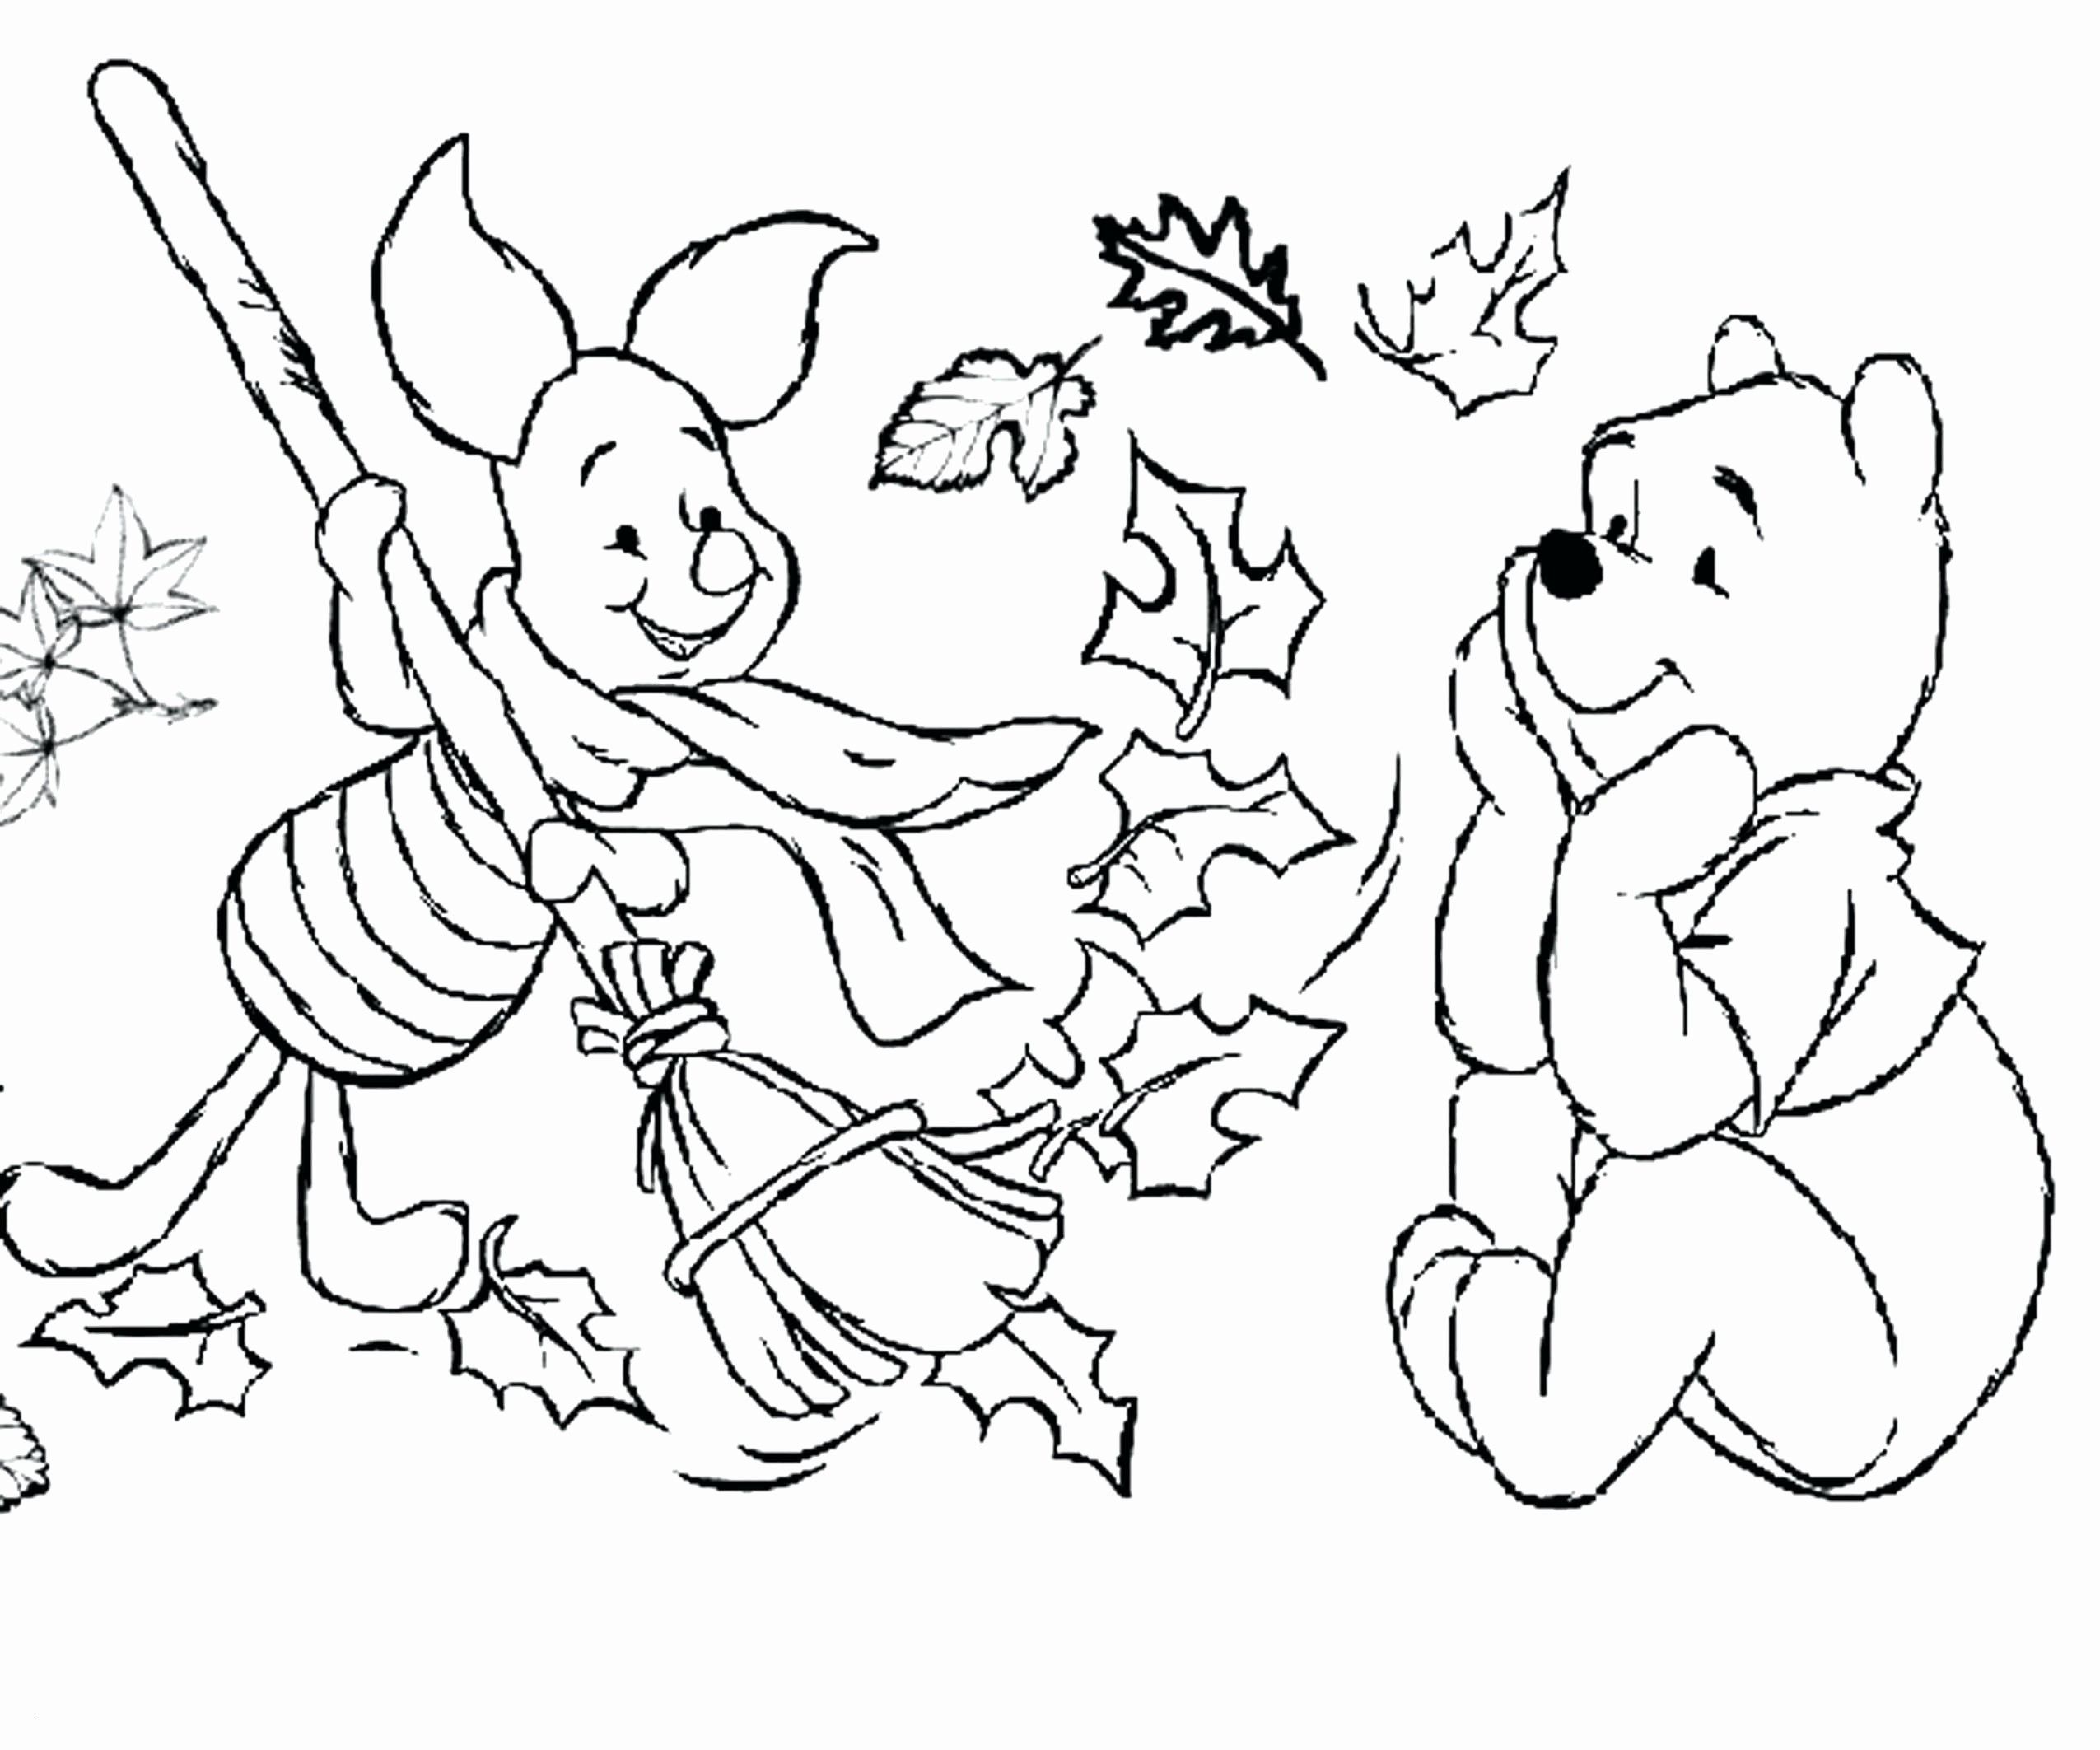 Free Coloring Pages For Kids Printable Coloring Pages For Fall Printable With Free And 30aa 0d